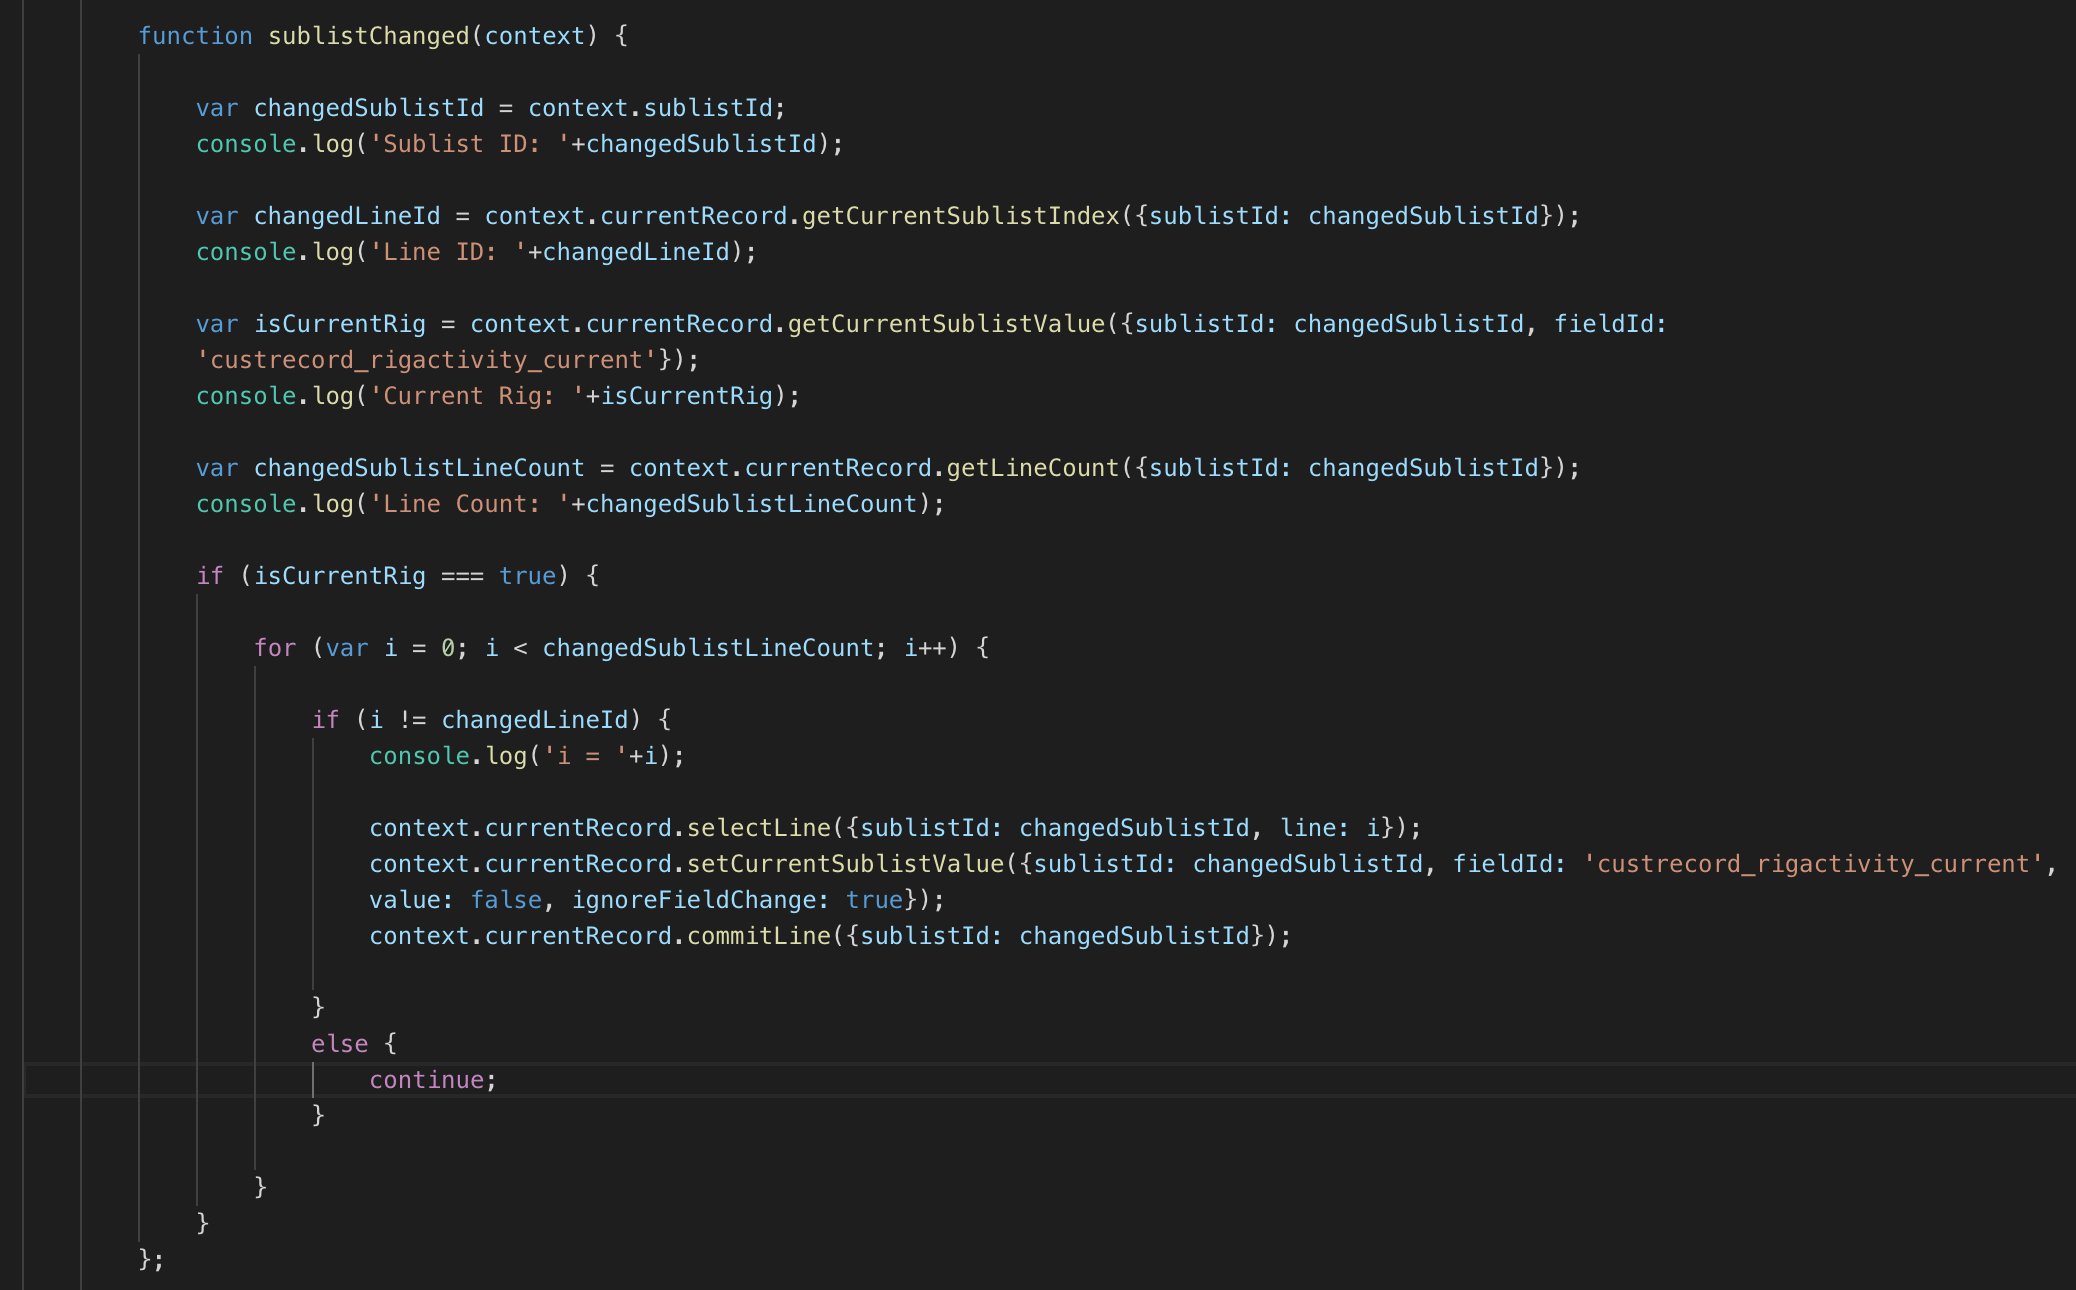 RE: How to Set a Sublist Value in a Client Script